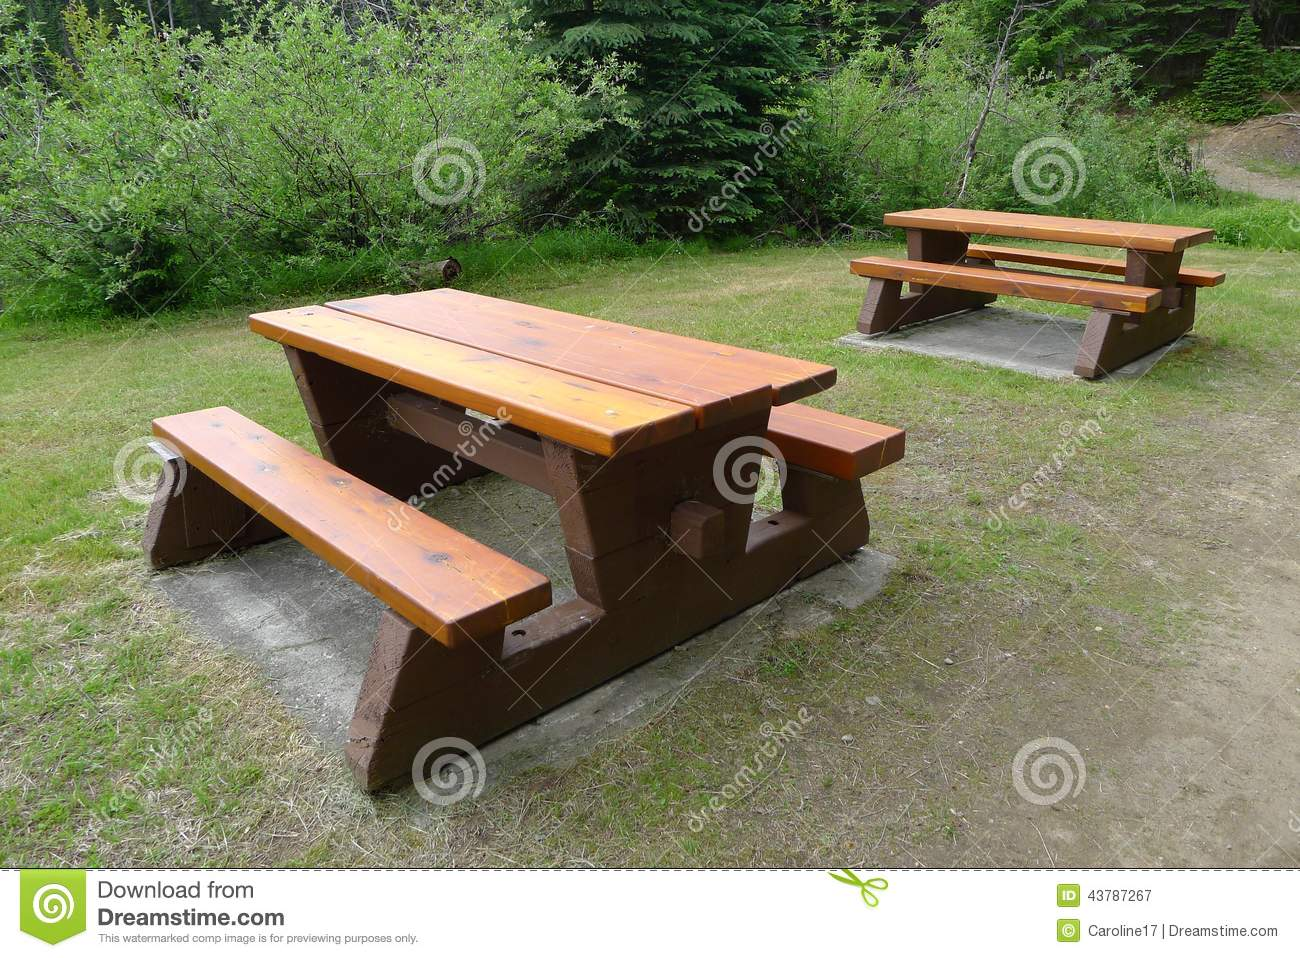 Wooden Picnic Tables And Benches Stock Image - Image: 43787267